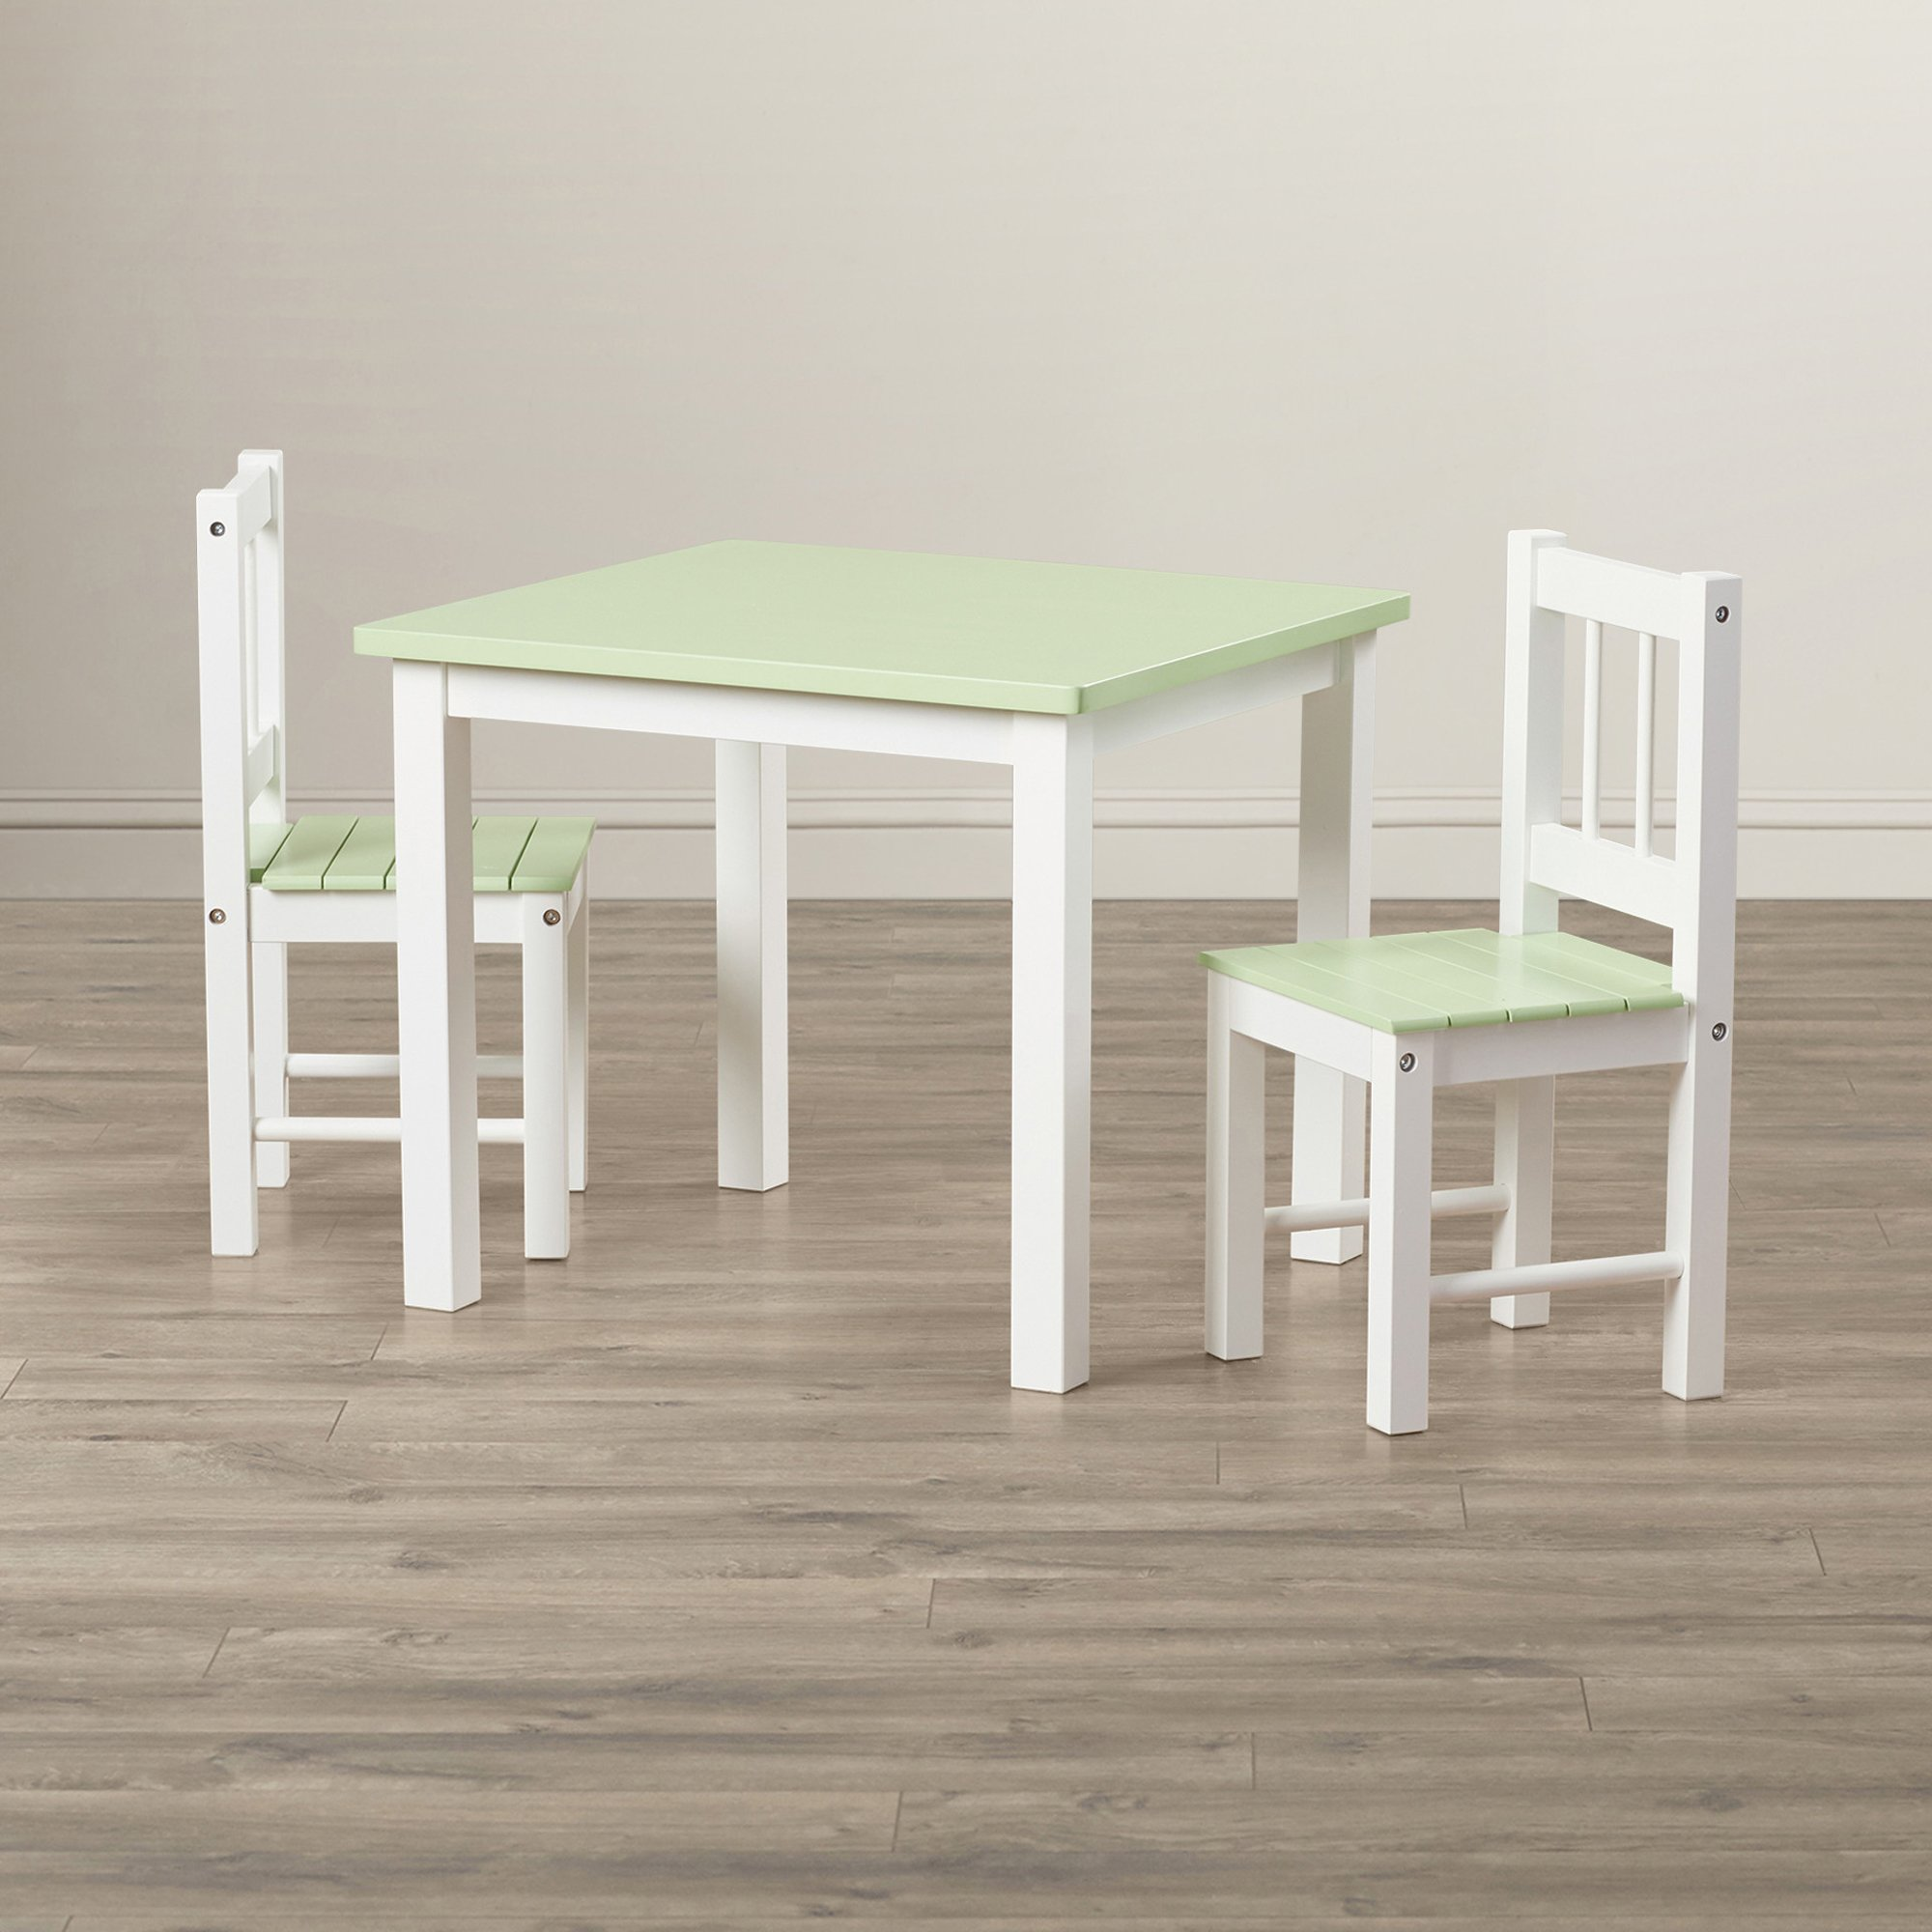 Kids Table And Chairs Set - 3 Piece Table And 2 Chairs - Wood Activity Playroom Furniture - White With Green Top Brightly Colored